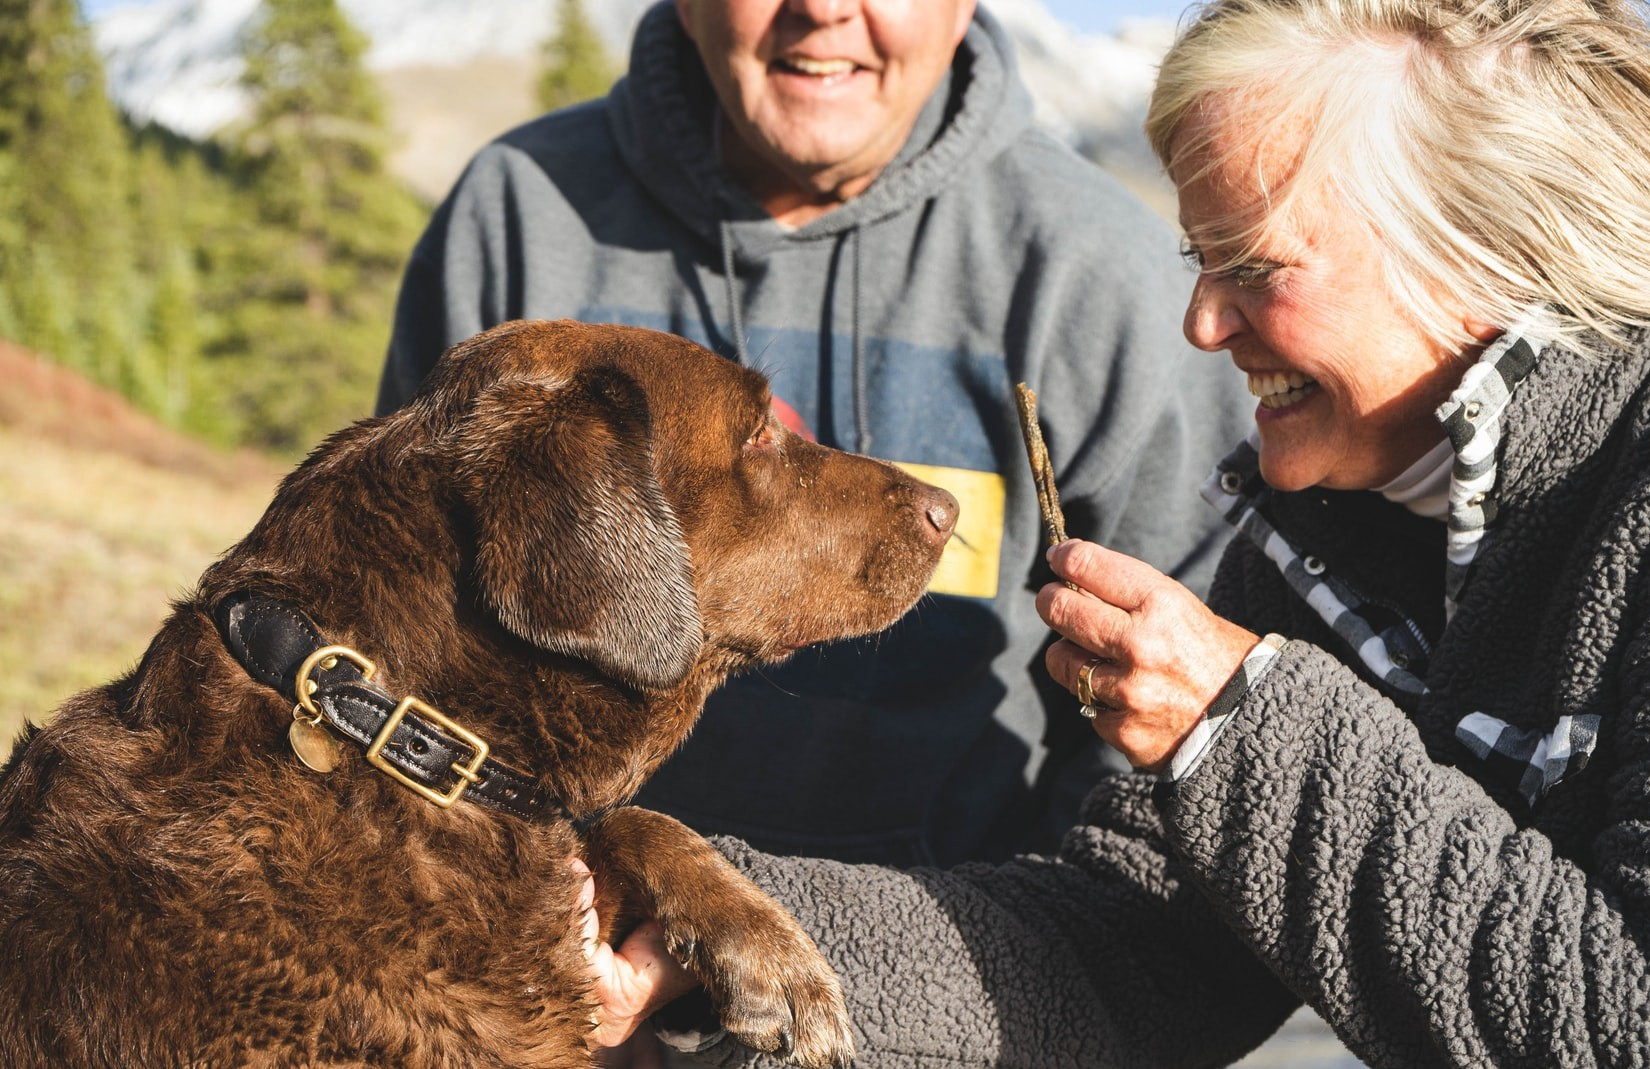 Pet brand taps eco values with plant-based dog food